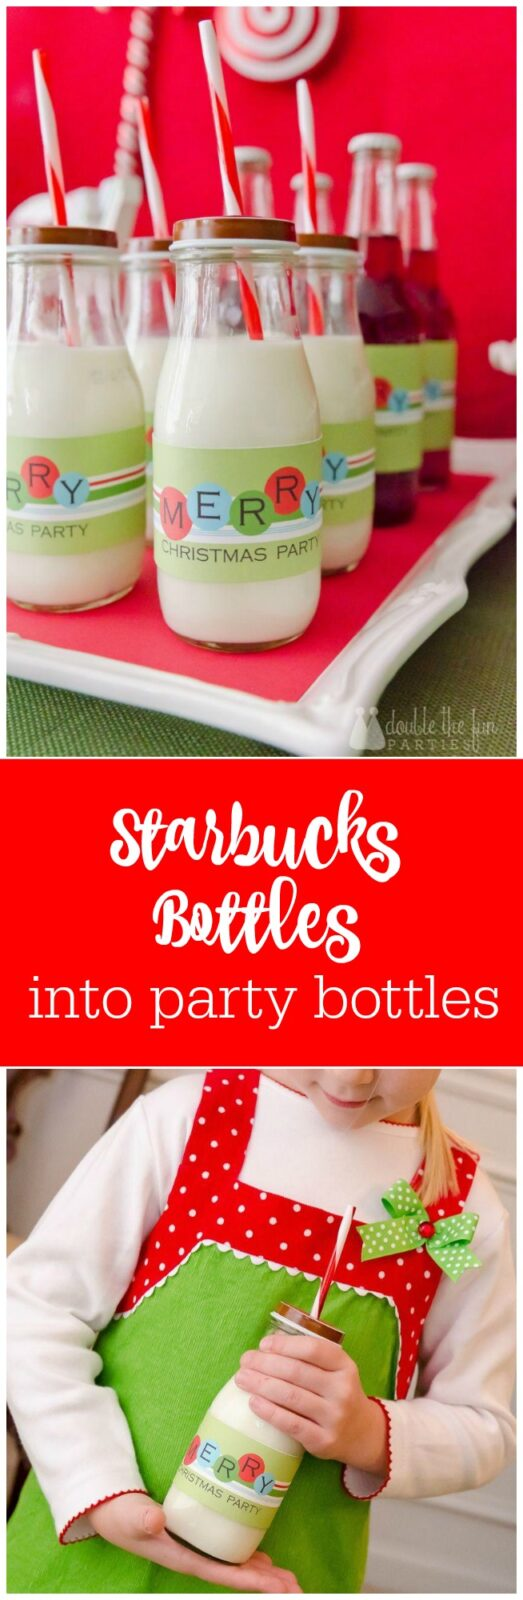 DIY - how to turn Starbucks bottles into party bottles with lids by The Party Teacher